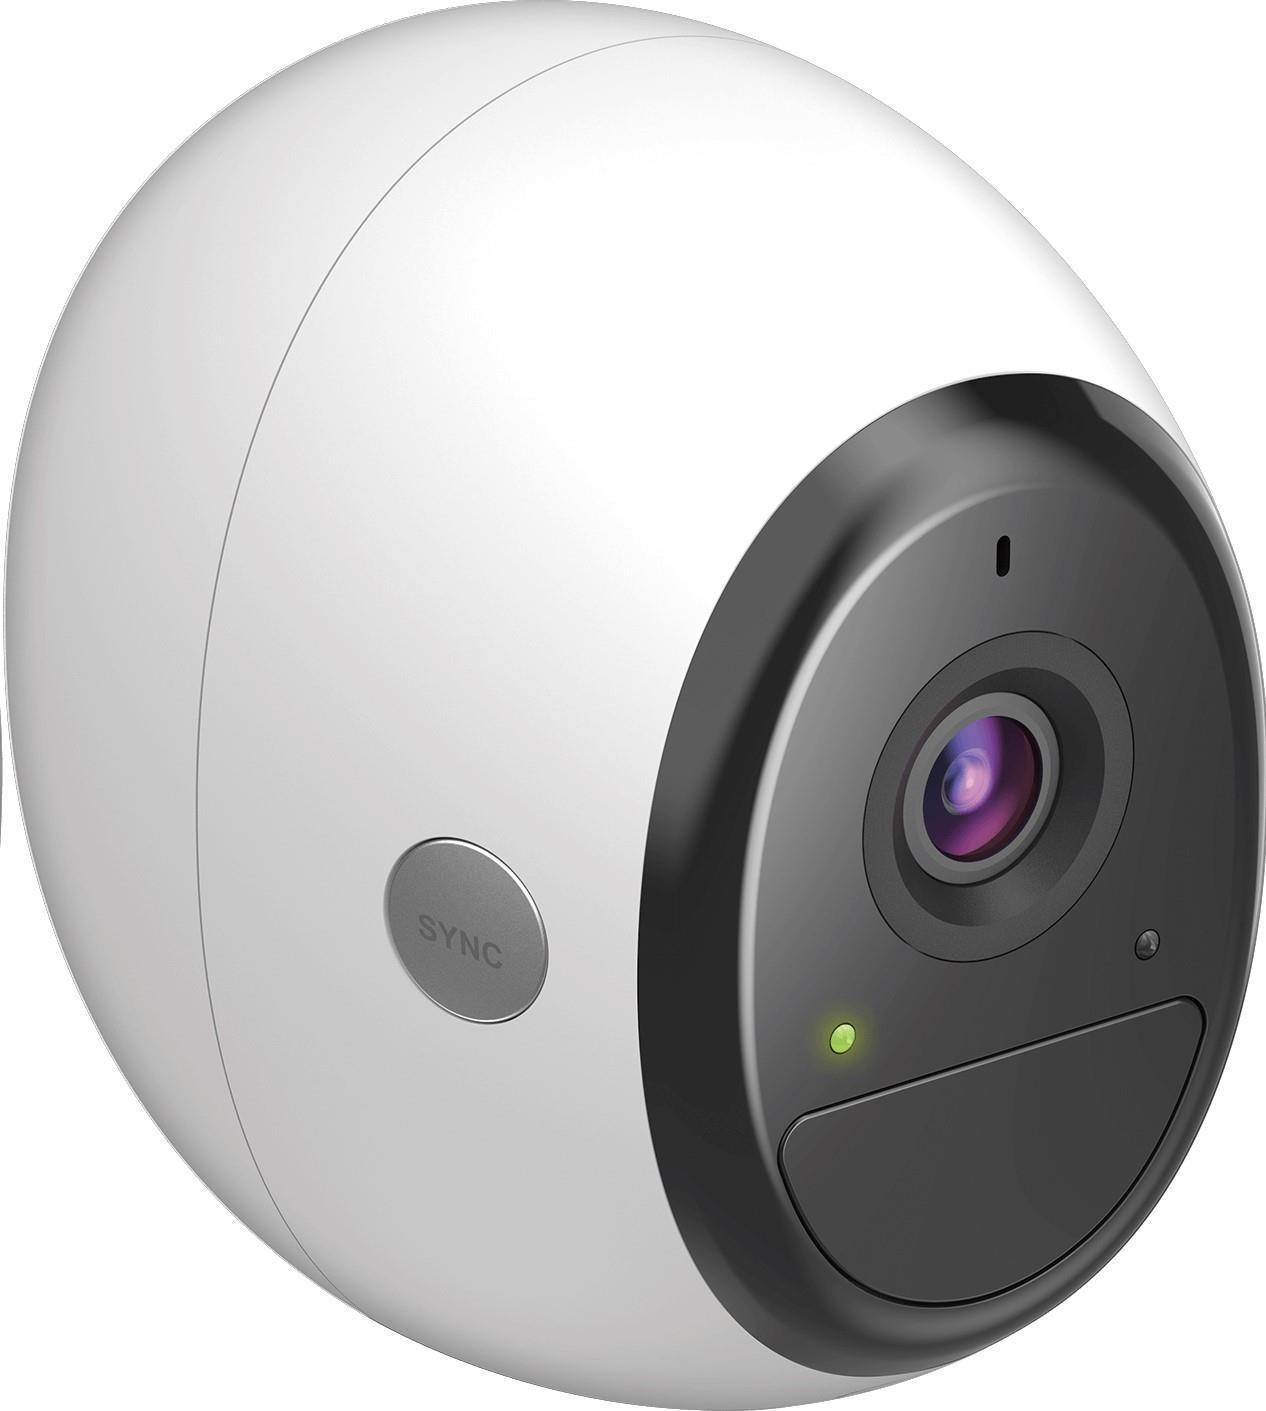 D-link Mydlink DCS-2800LH-EU Pro Wire-free Camera